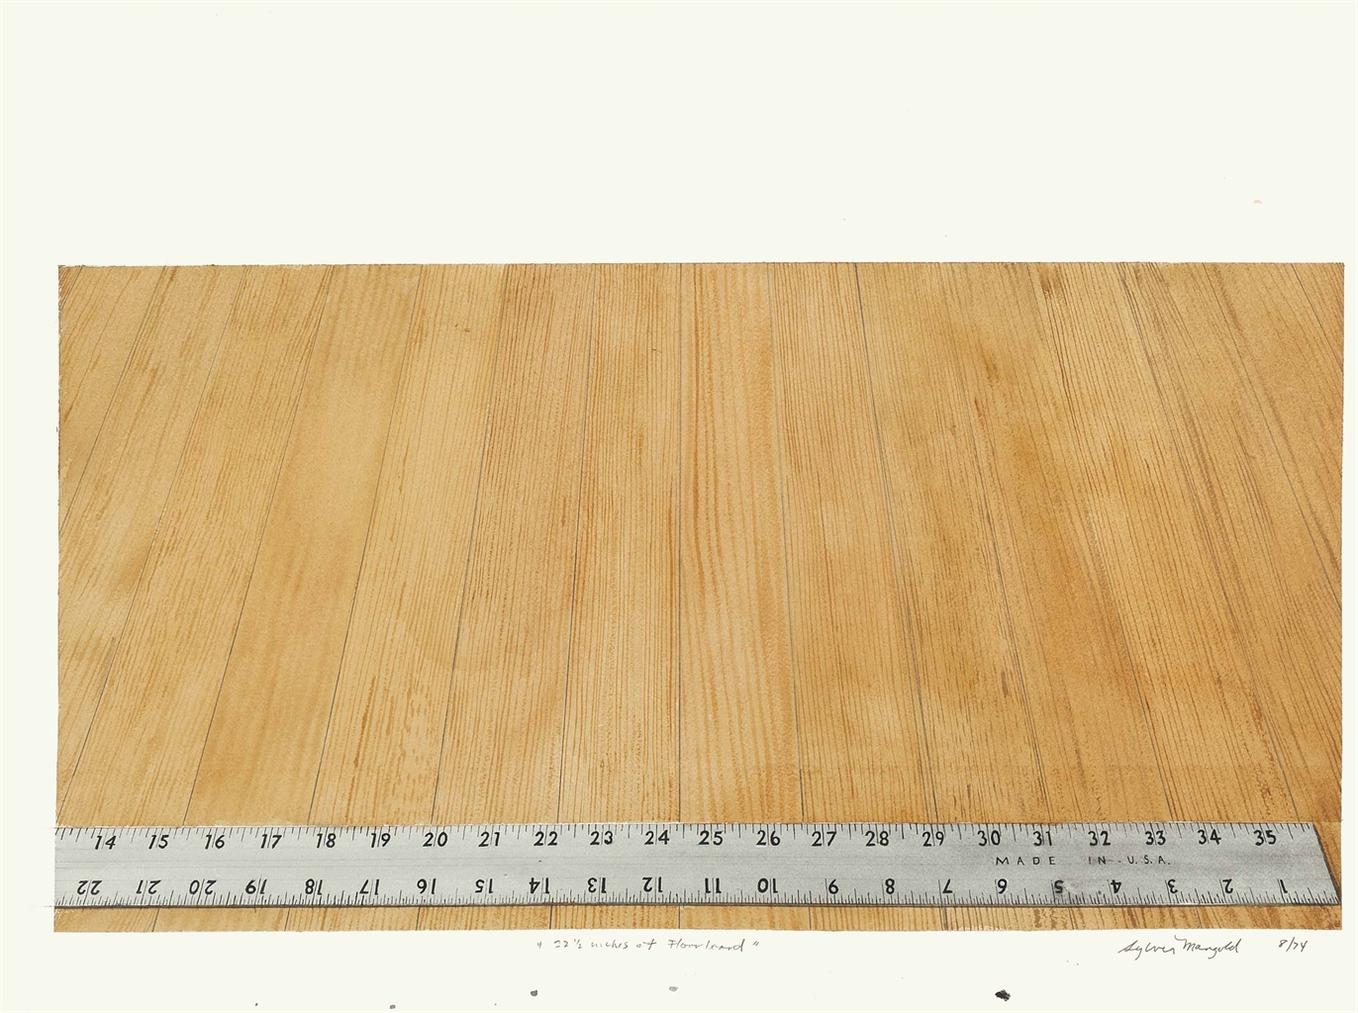 Sylvia Plimack Mangold-22 1/2 Inches Of Floorboard-1974